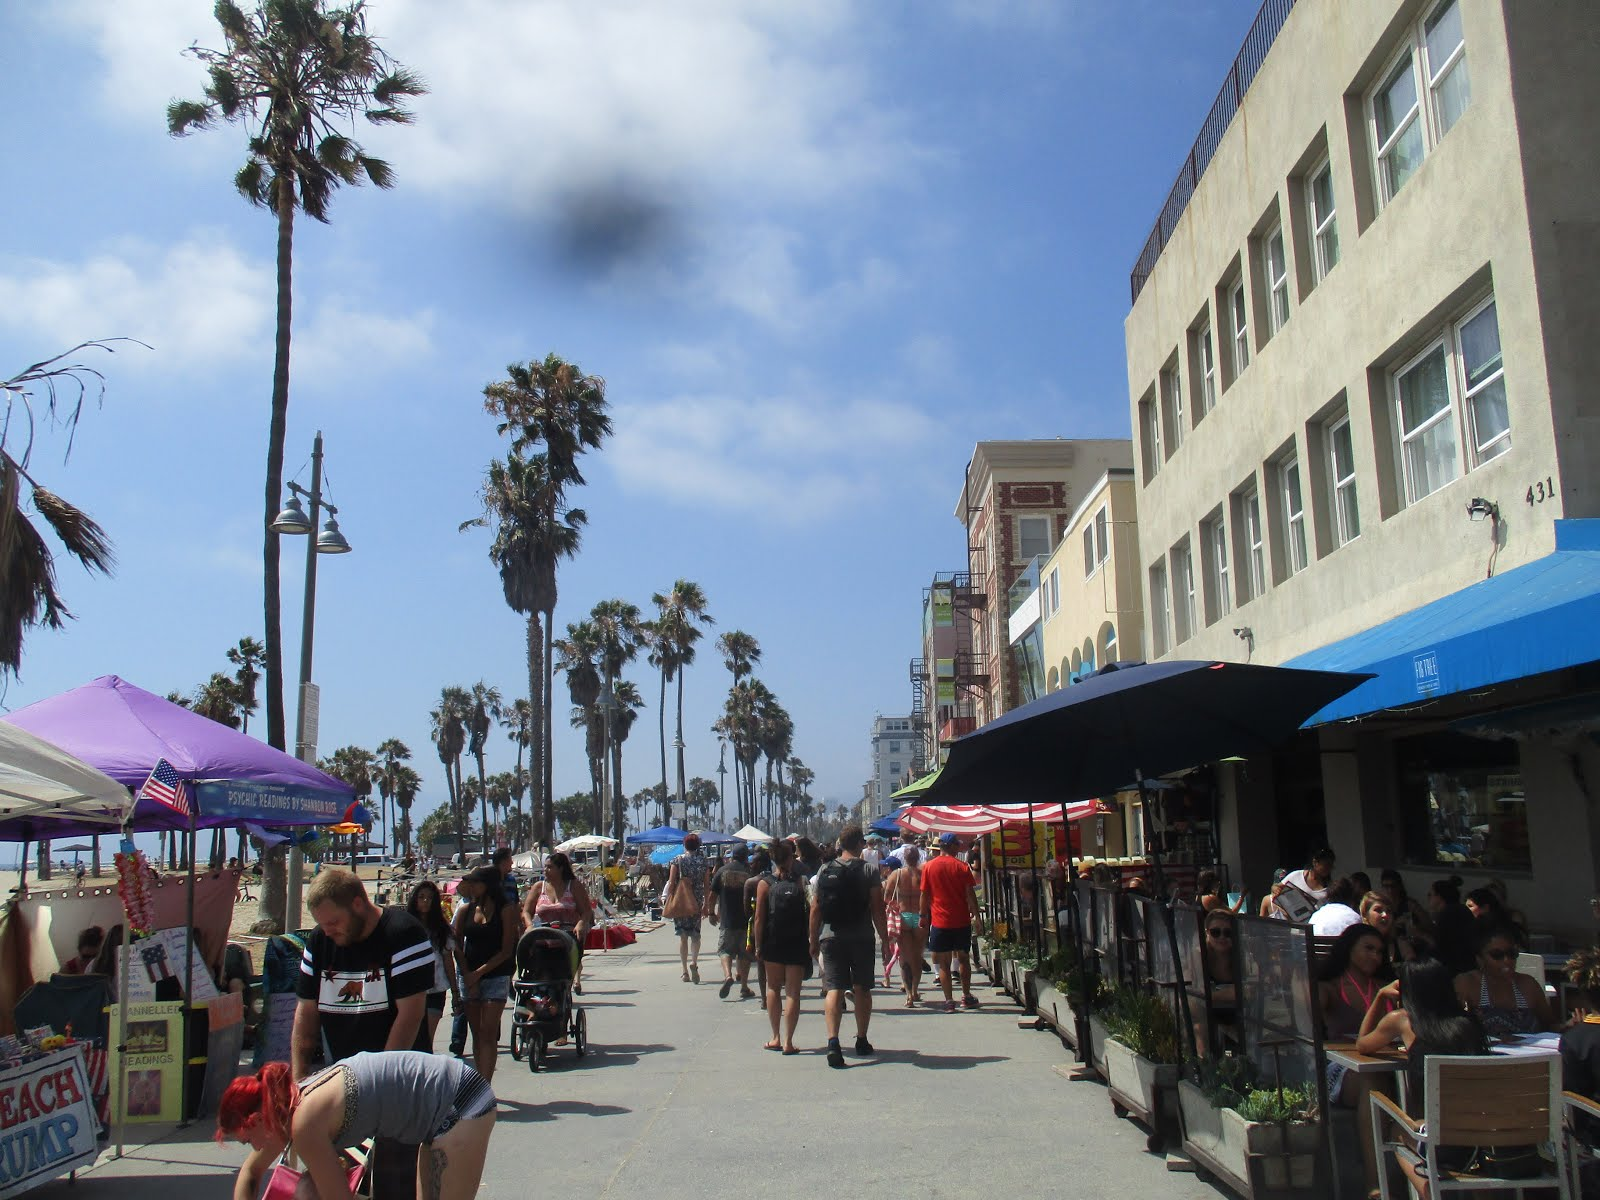 VENICE CALIFORNIA - 40 ANS PLUS TARD